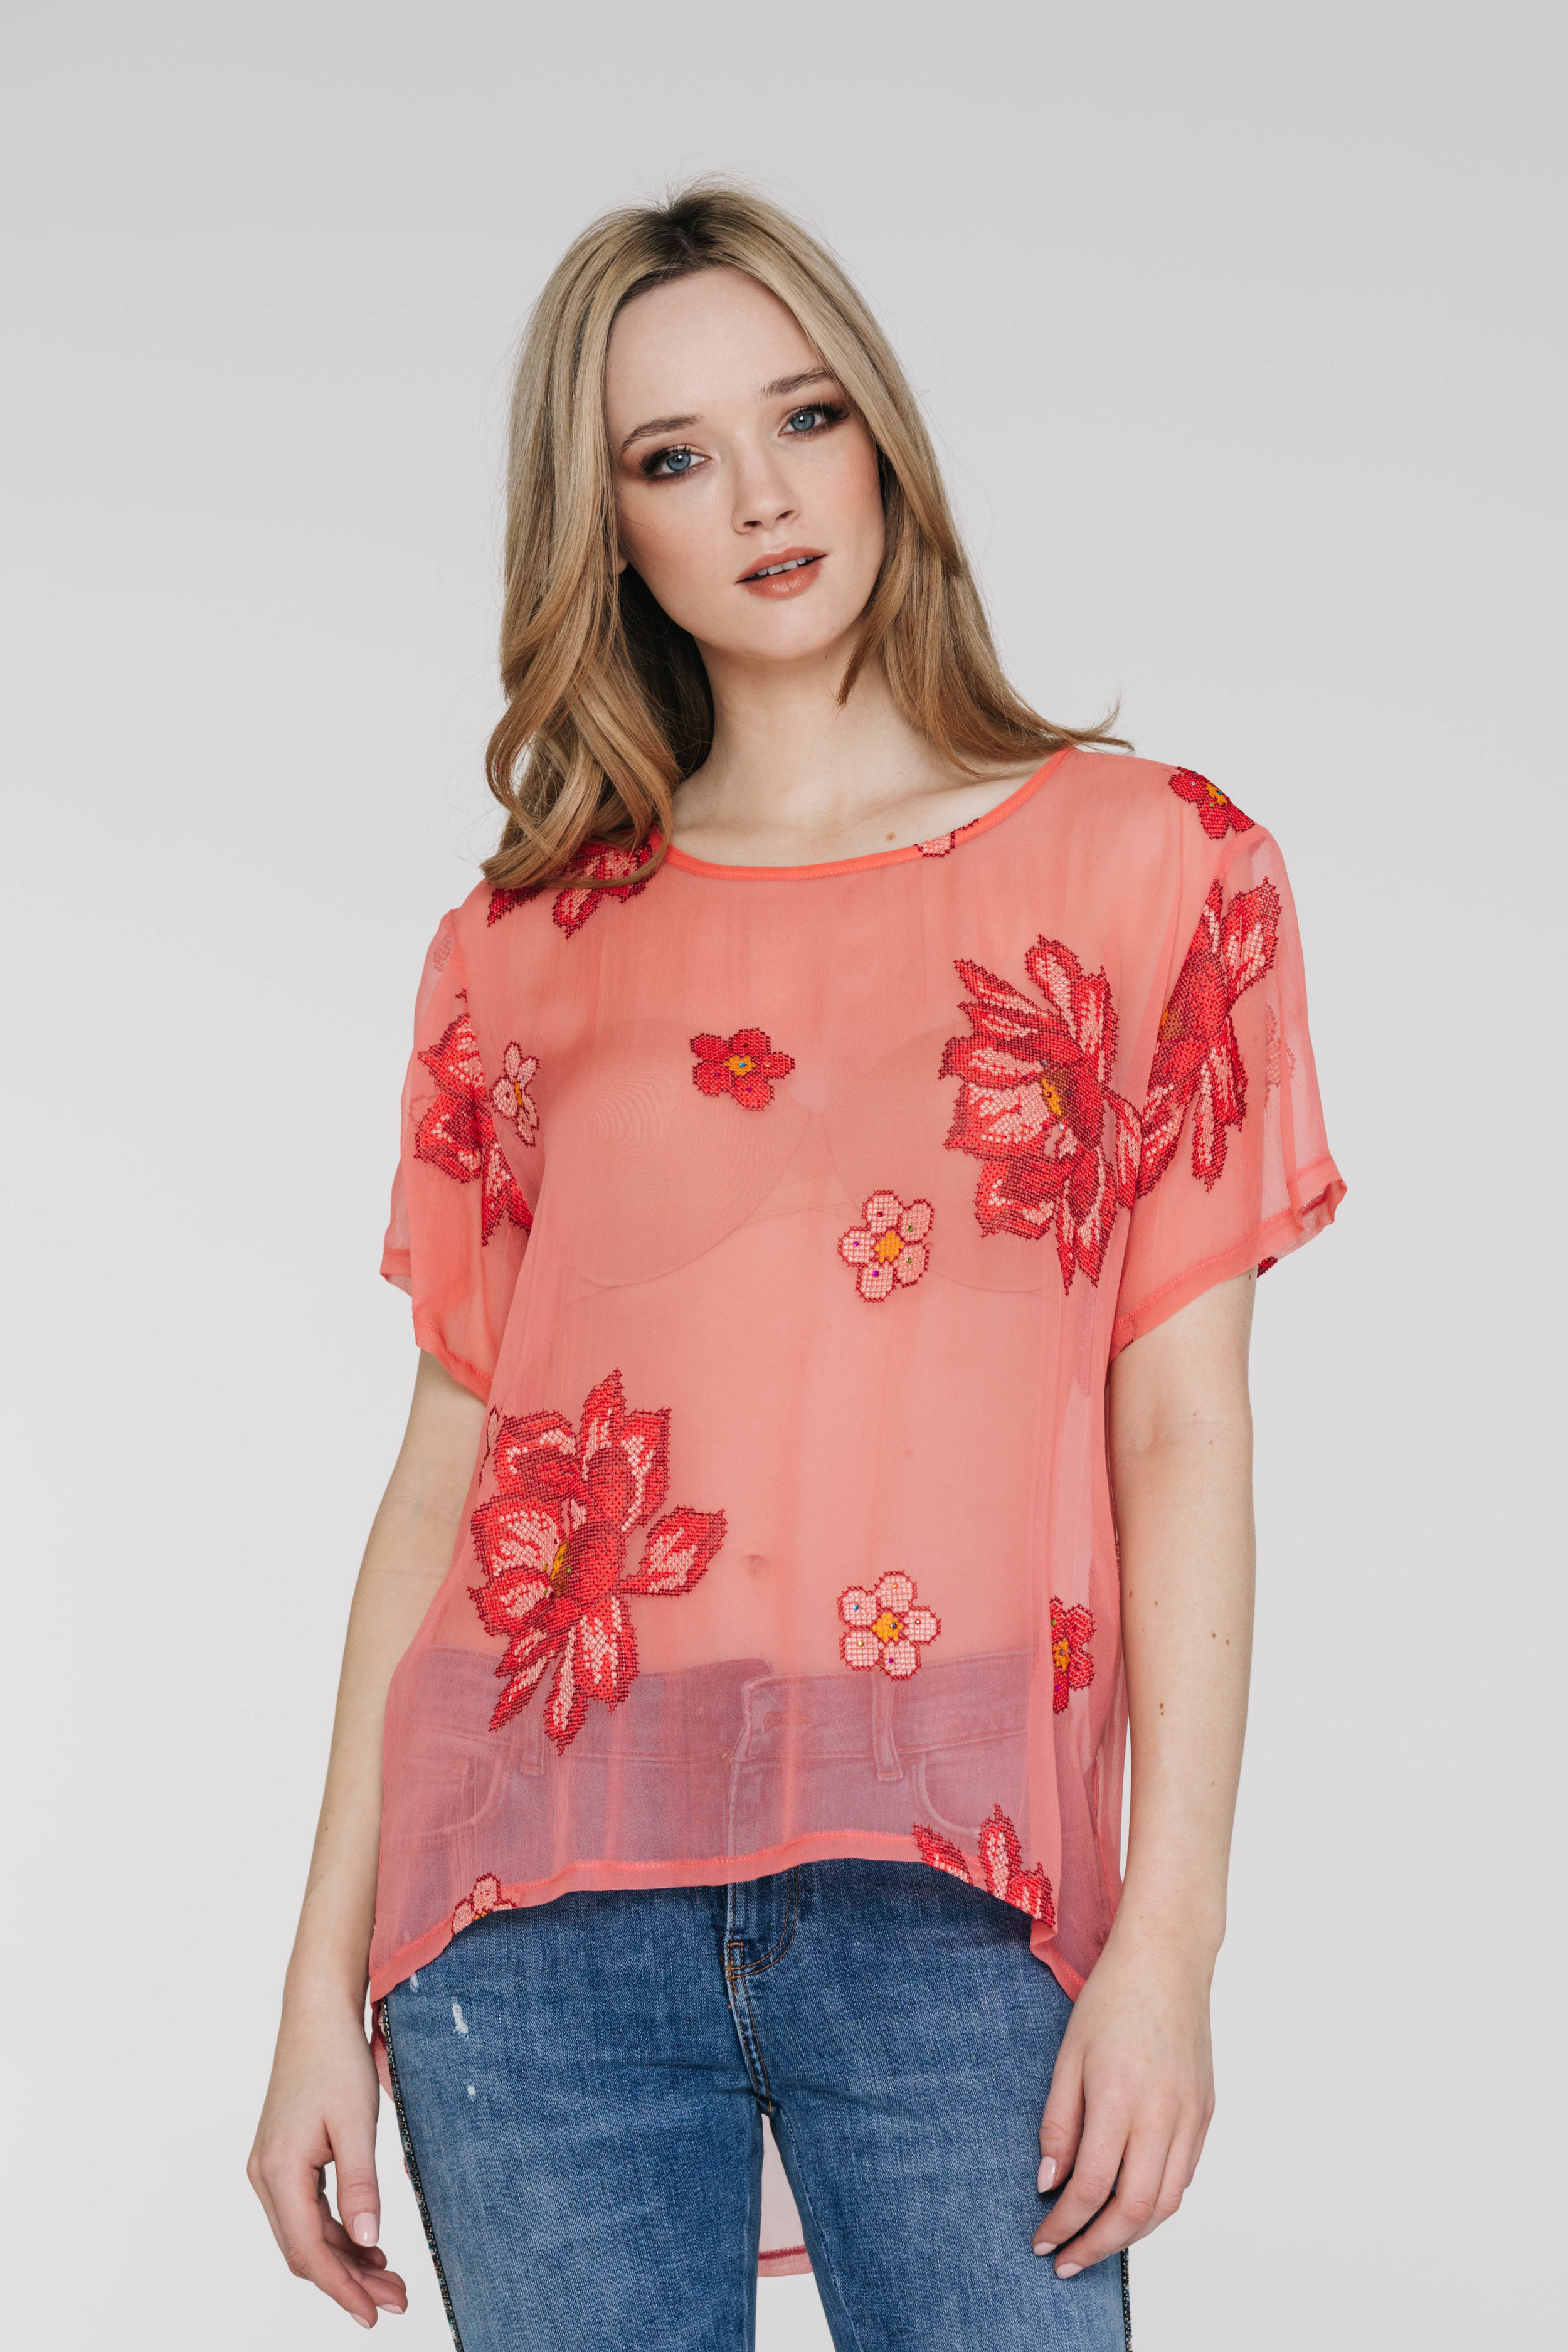 Perfect Tee 4405PD Starry Rose Coral